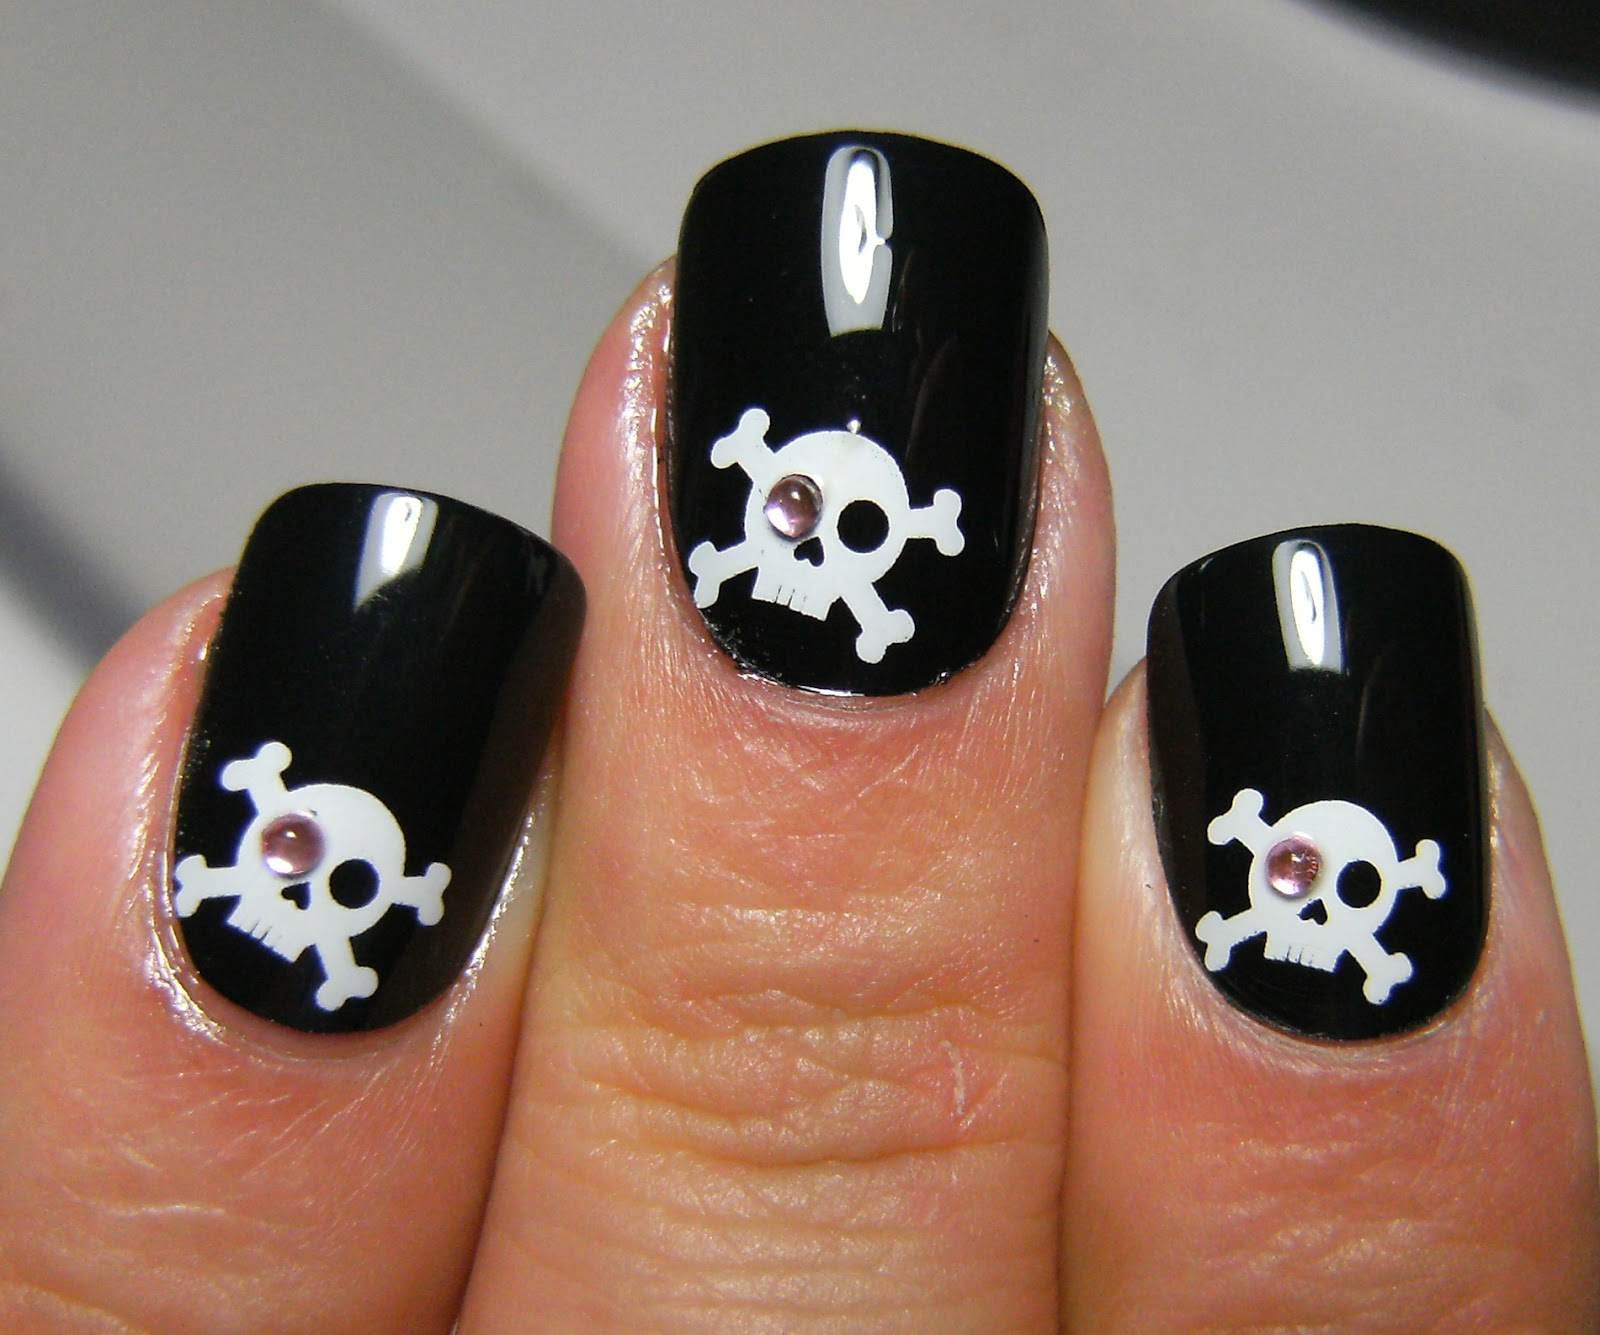 Deez Nailz Skull Amp Crossbones Fing Rs Nails